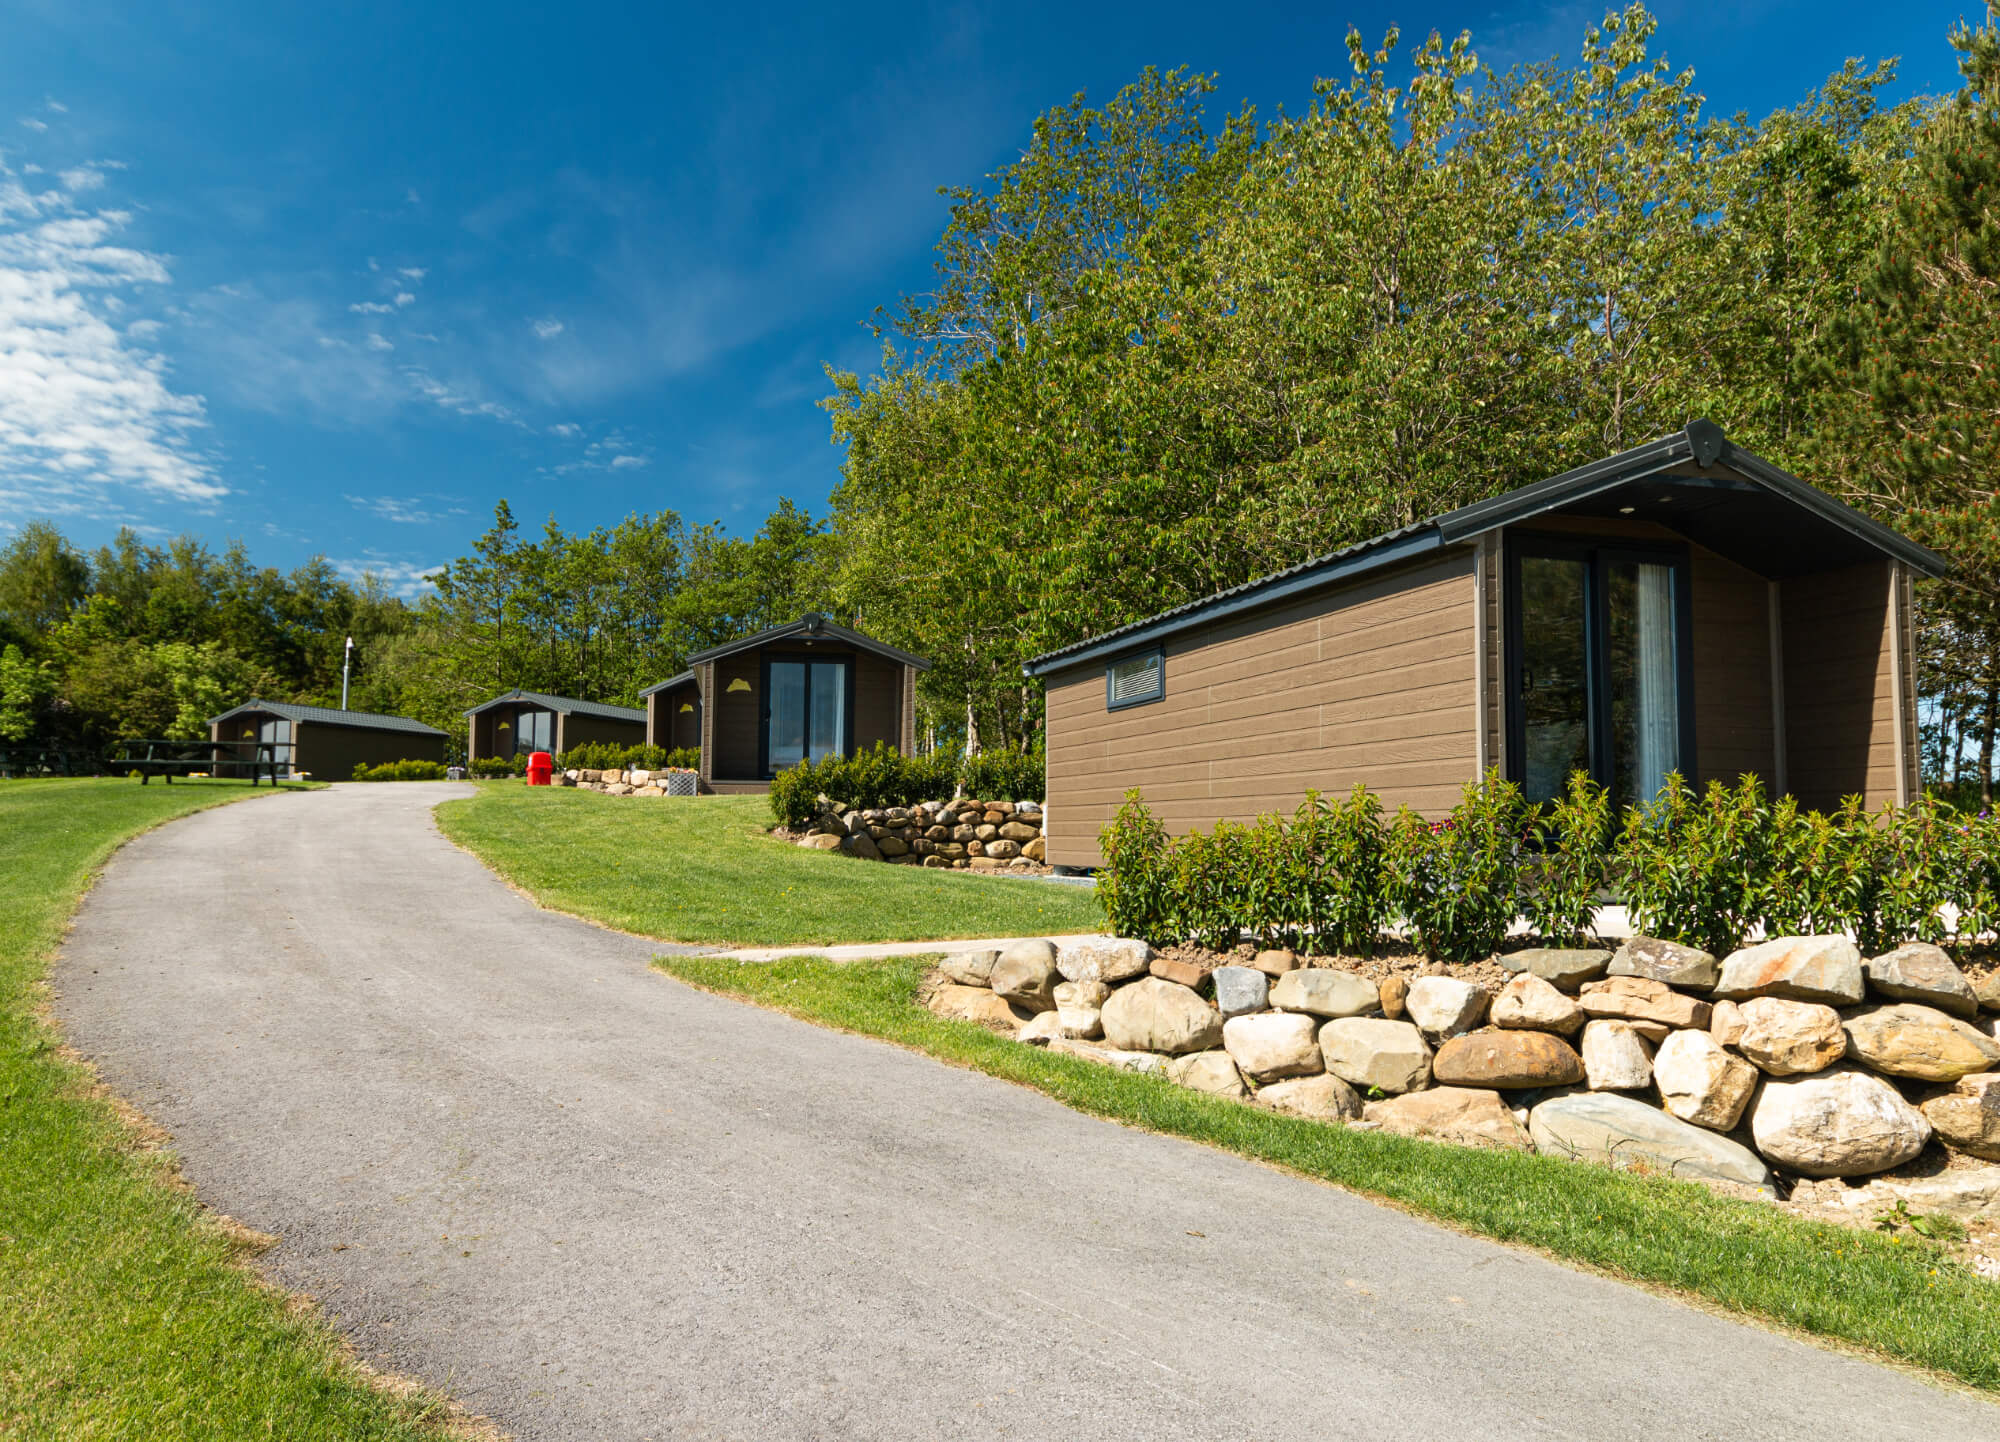 View of the lodges at Wenningdale Escapes